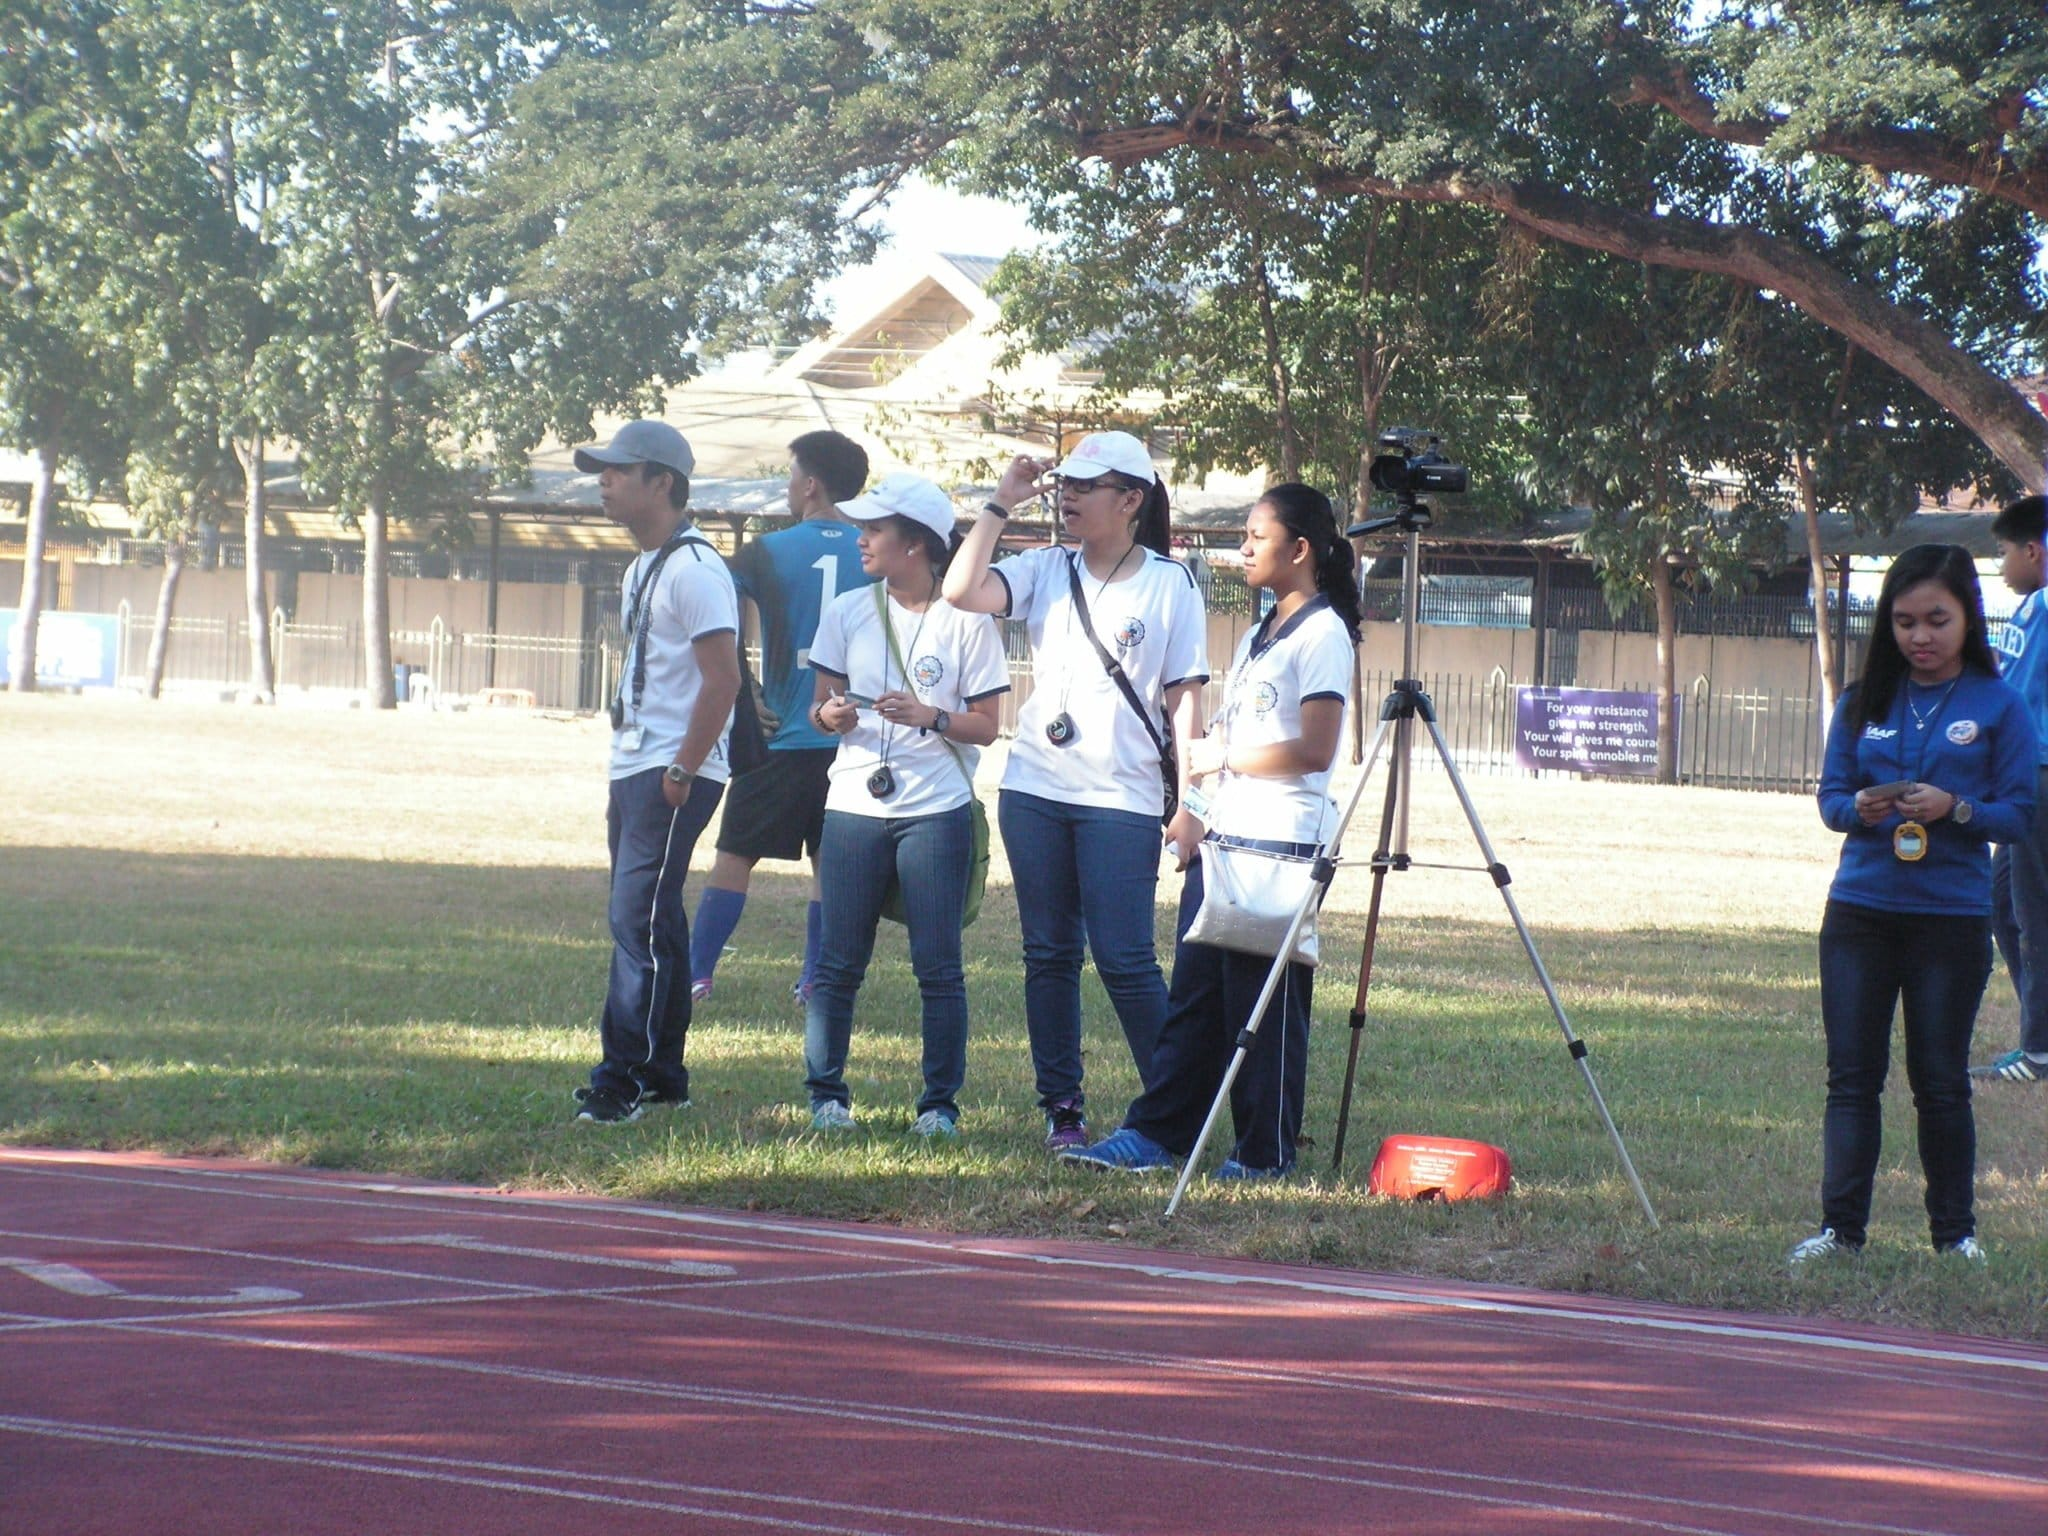 At the Blue Knights Track League, it involves students as technical officials. Hence it provides better participation to different stakeholders and not just being dependent to the usual system.